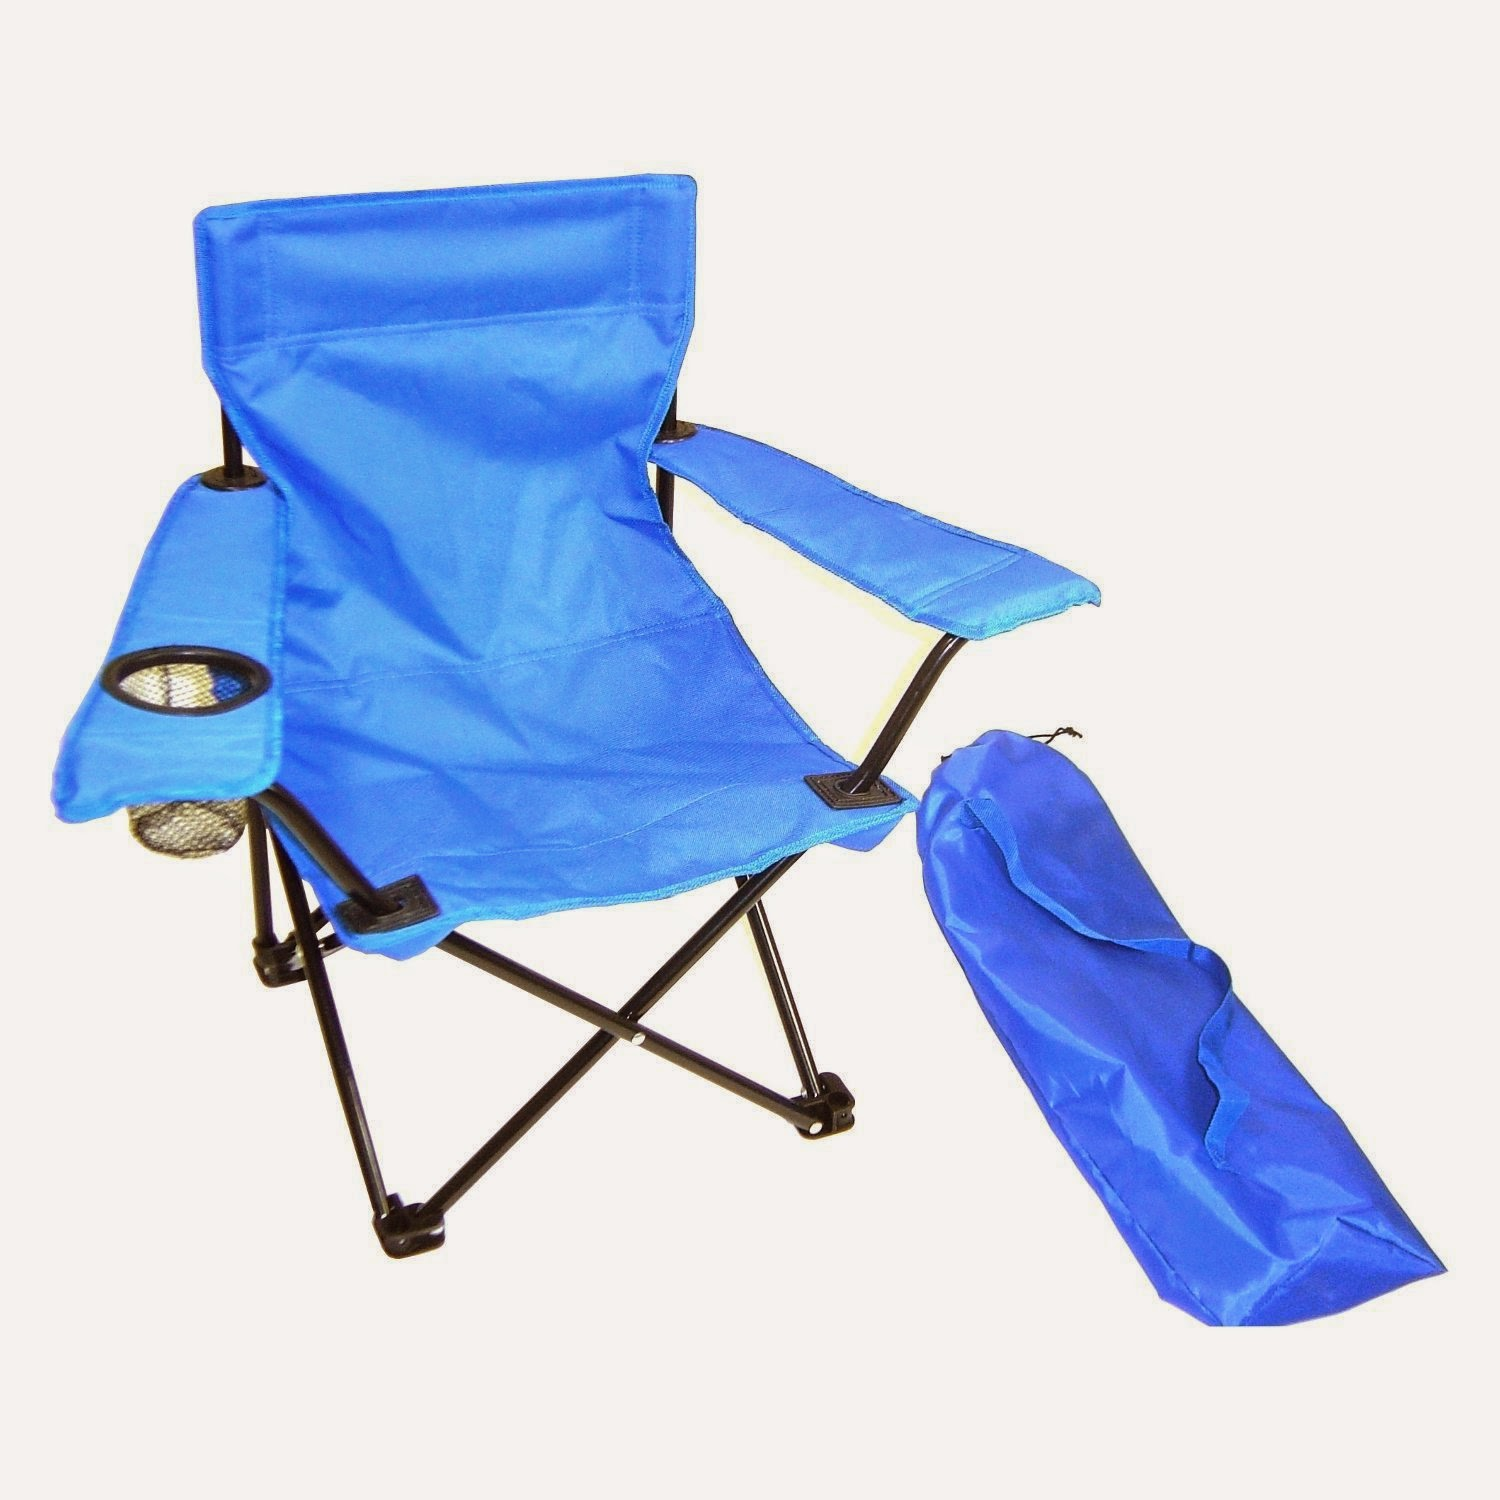 Cheap Folding Beach Chairs Cheap Beach Chairs Kids Beach Chairs